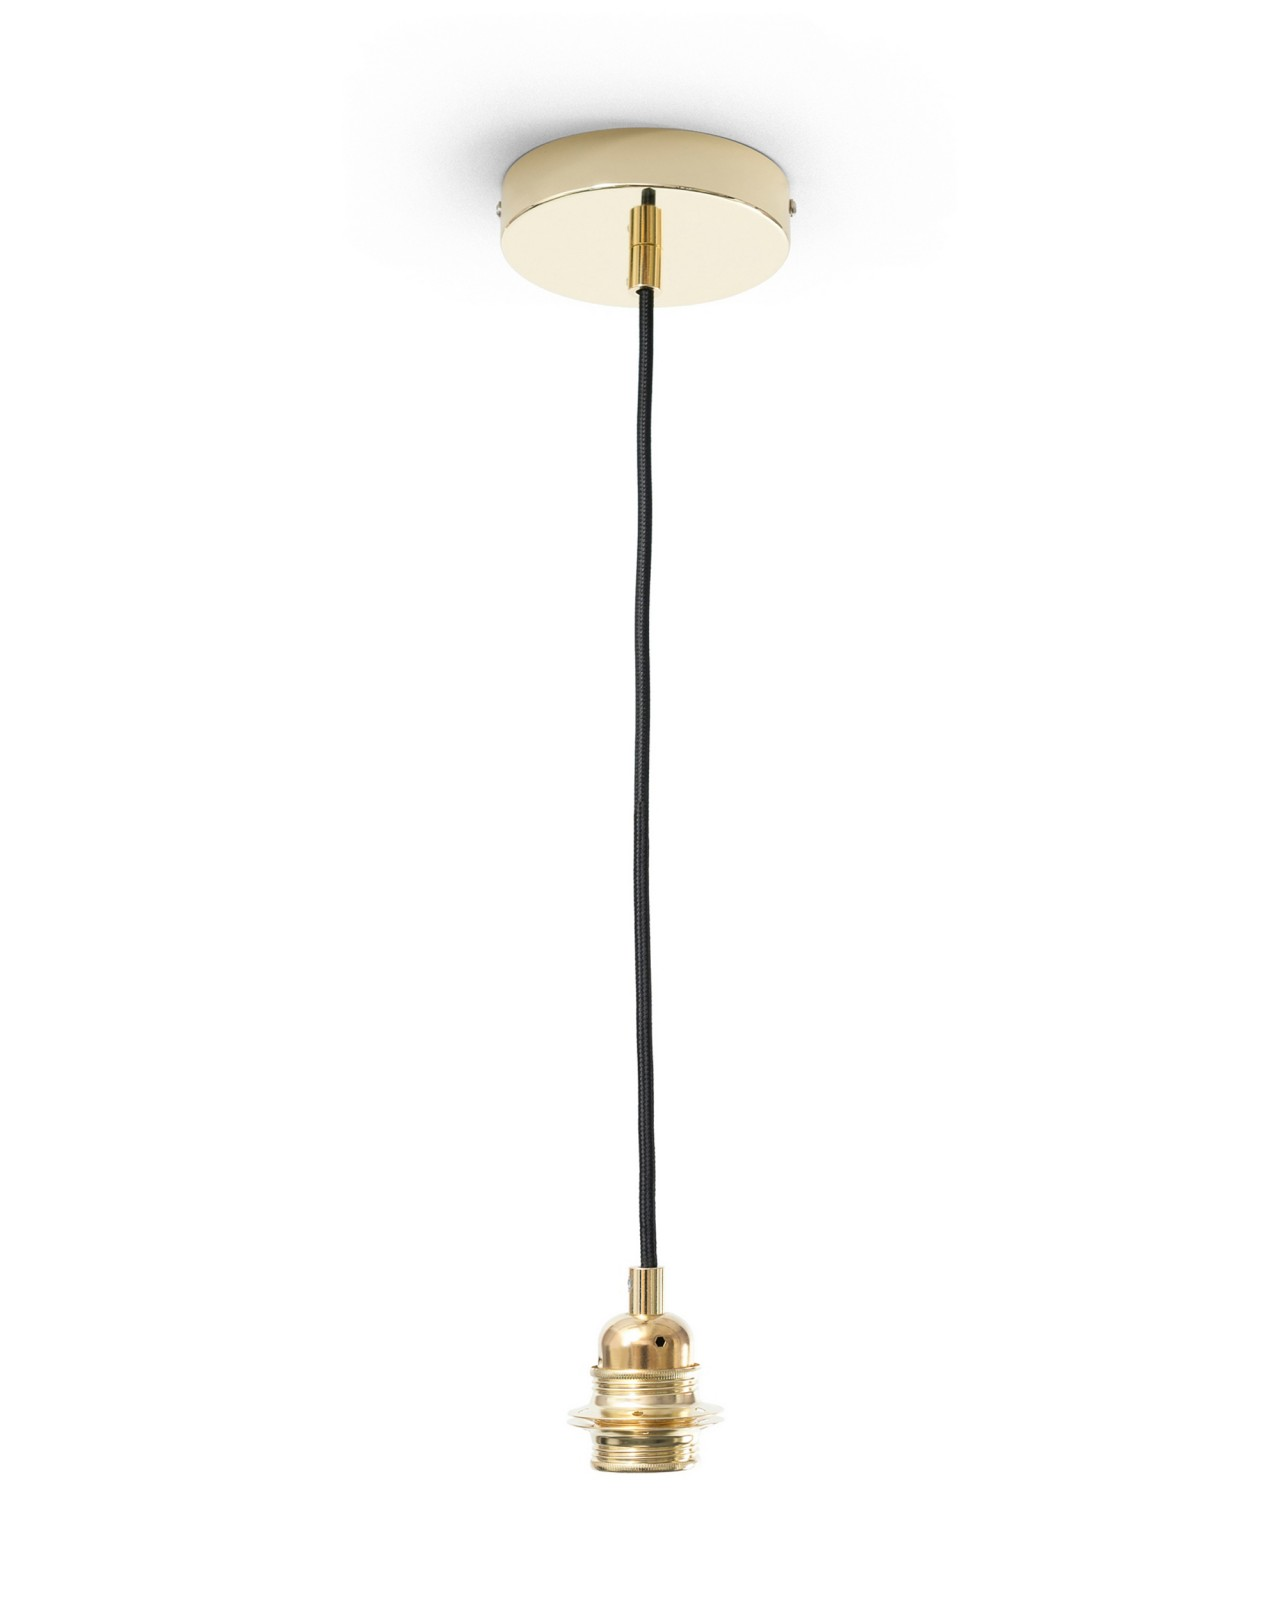 DECORATIVE PANEL Pendant Lamp